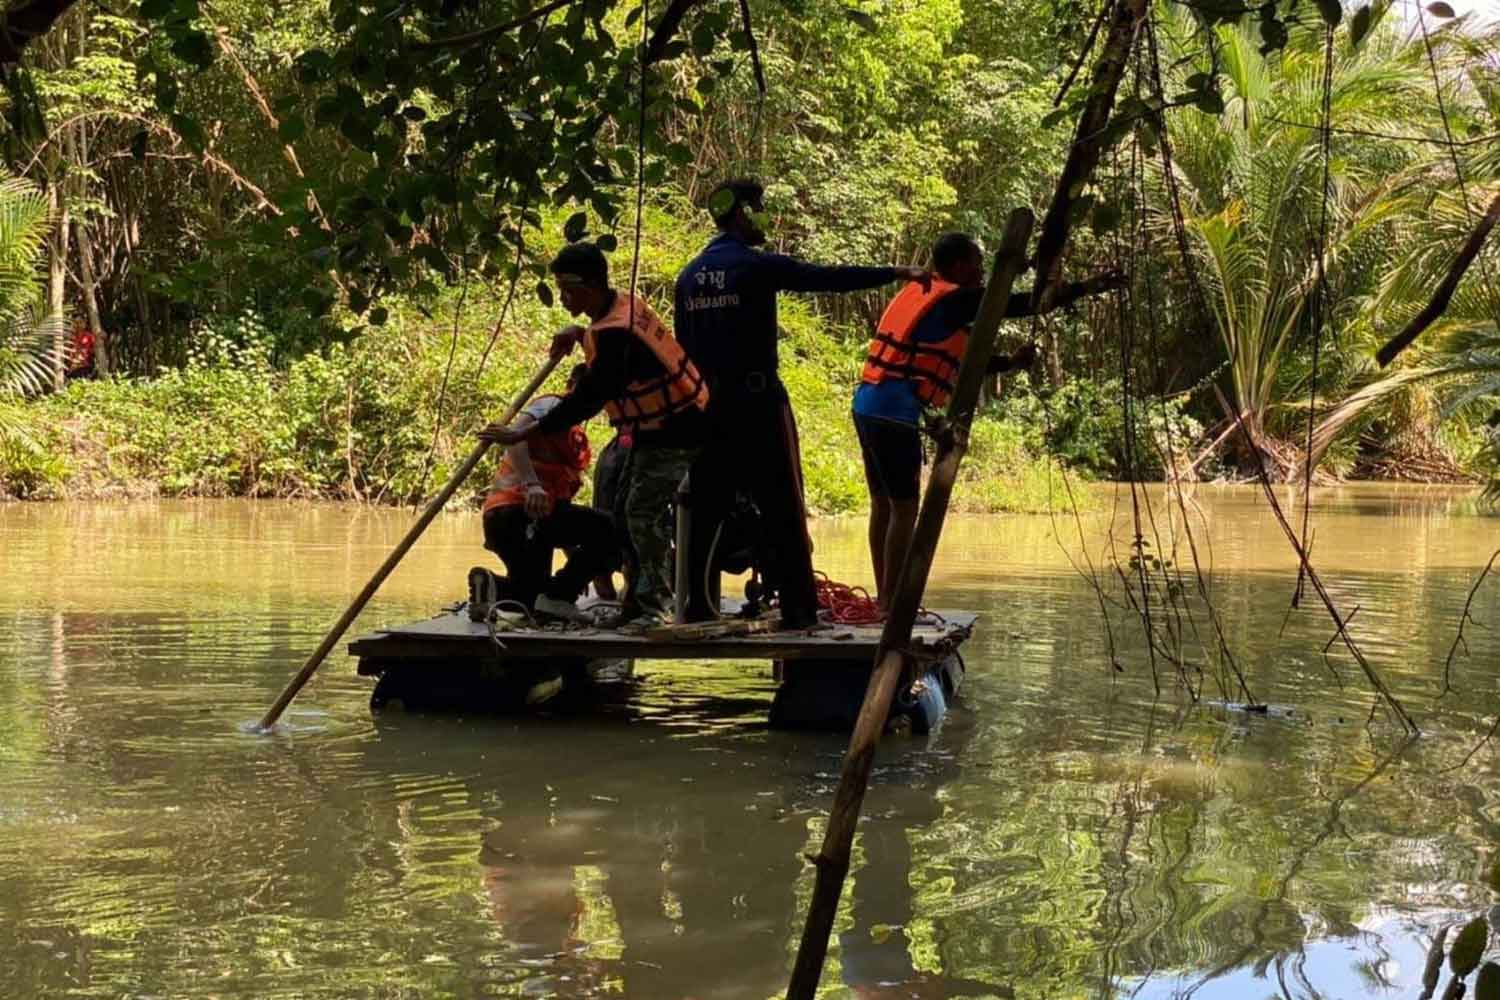 Rescuers on a raft search a canal in Sichon district, Nakhon Si Thammarat, for a man who disappeared while fishing, and later found his body. (Photo: Nujaree Raekrun)